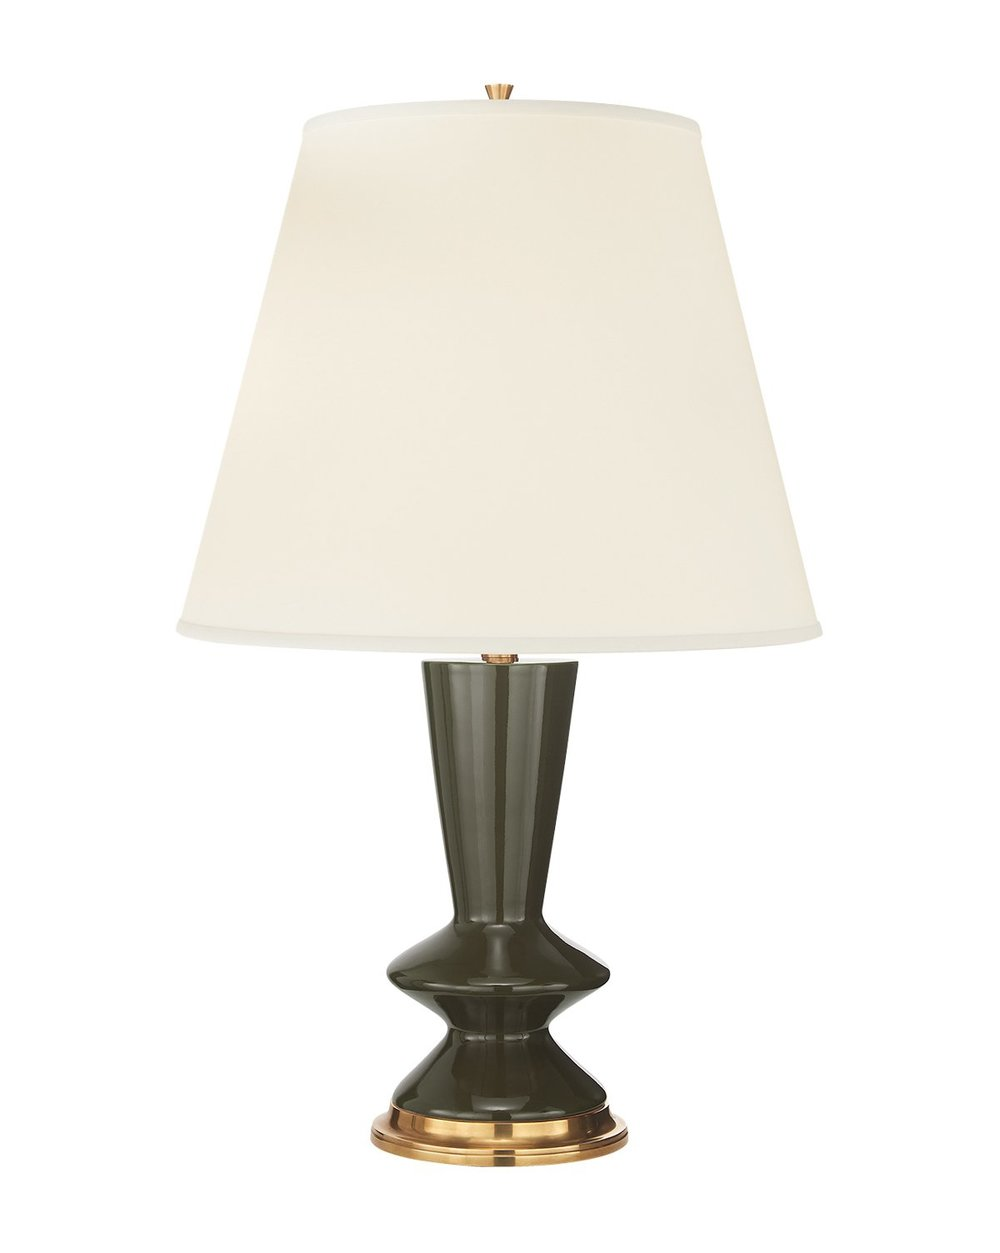 Arpel_Table_Lamp_1.jpg